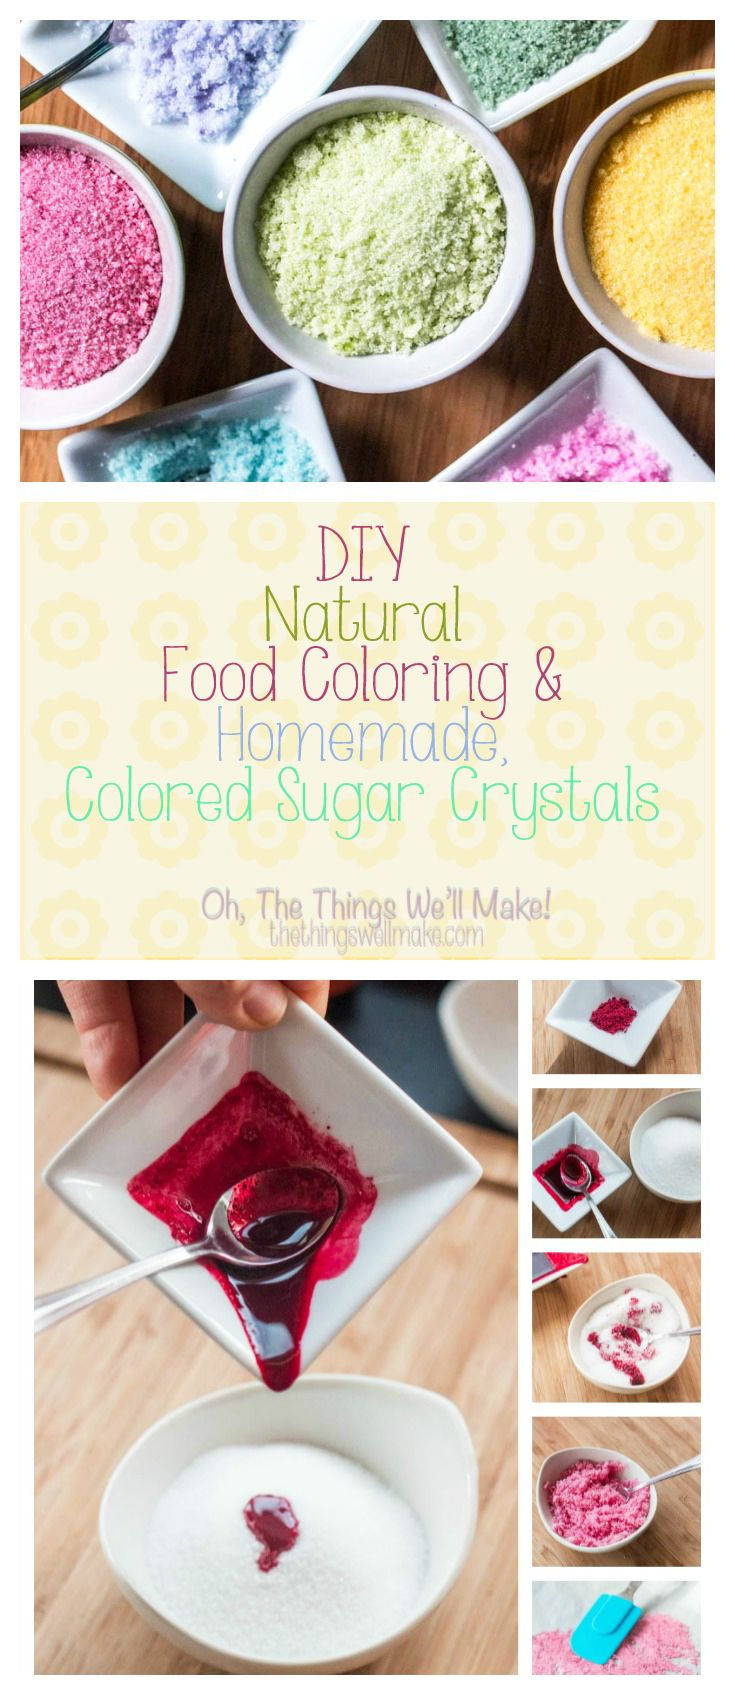 DIY Natural Food Coloring and Homemade Colored Sugar Crystals ...